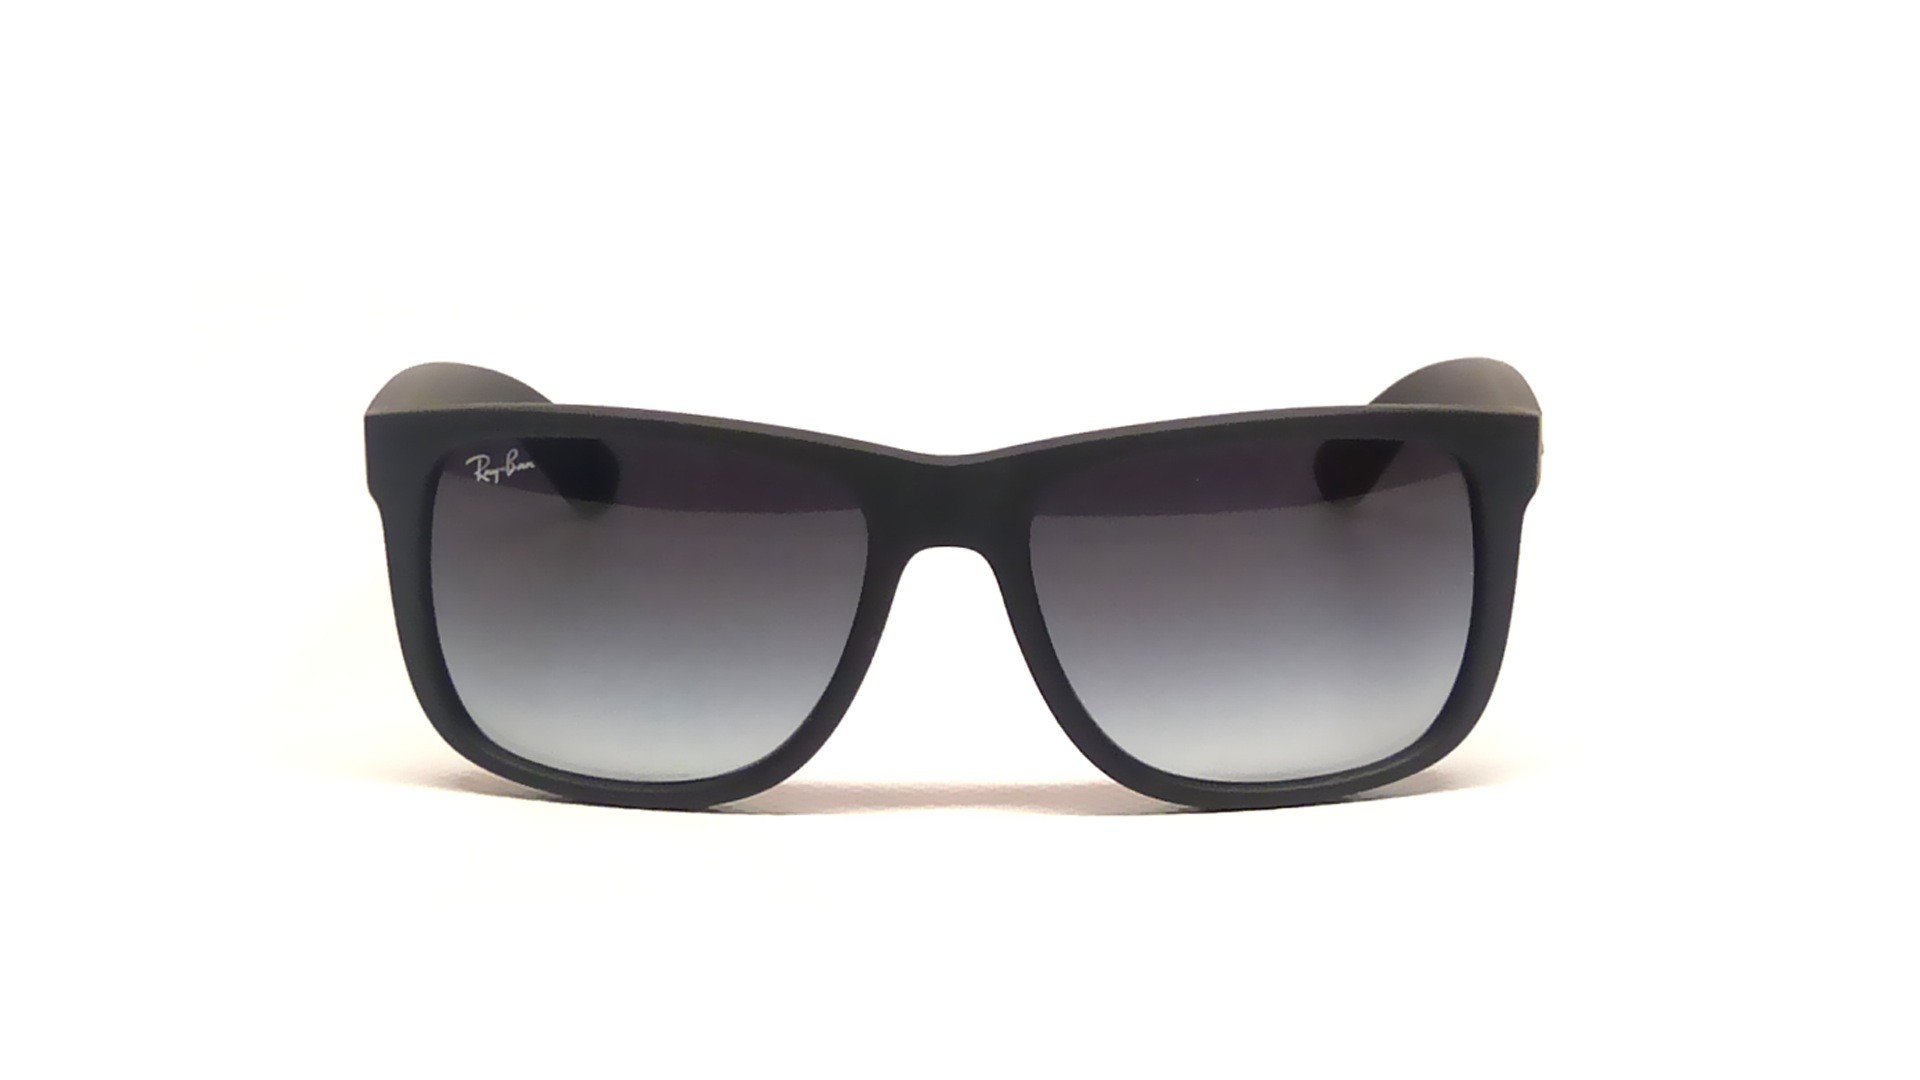 a7757d3b57 Sunglasses Ray-Ban Justin Classic Black RB4165 601 8G 54-16 Large Gradient